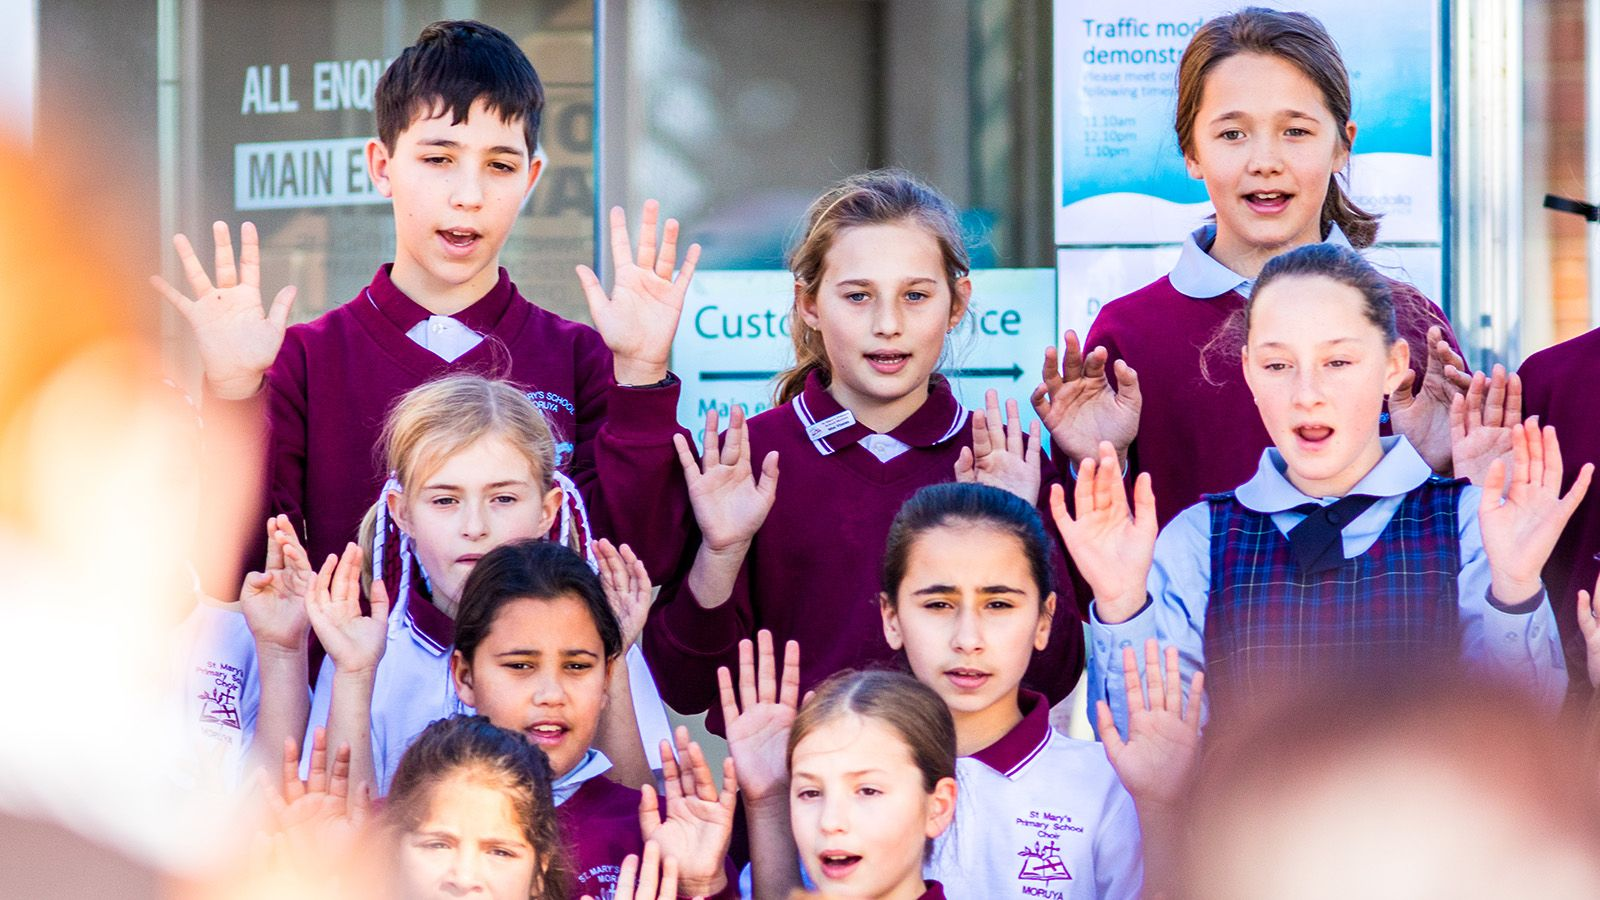 Eight students in Saint Mary's school uniforms perfoming a song banner image